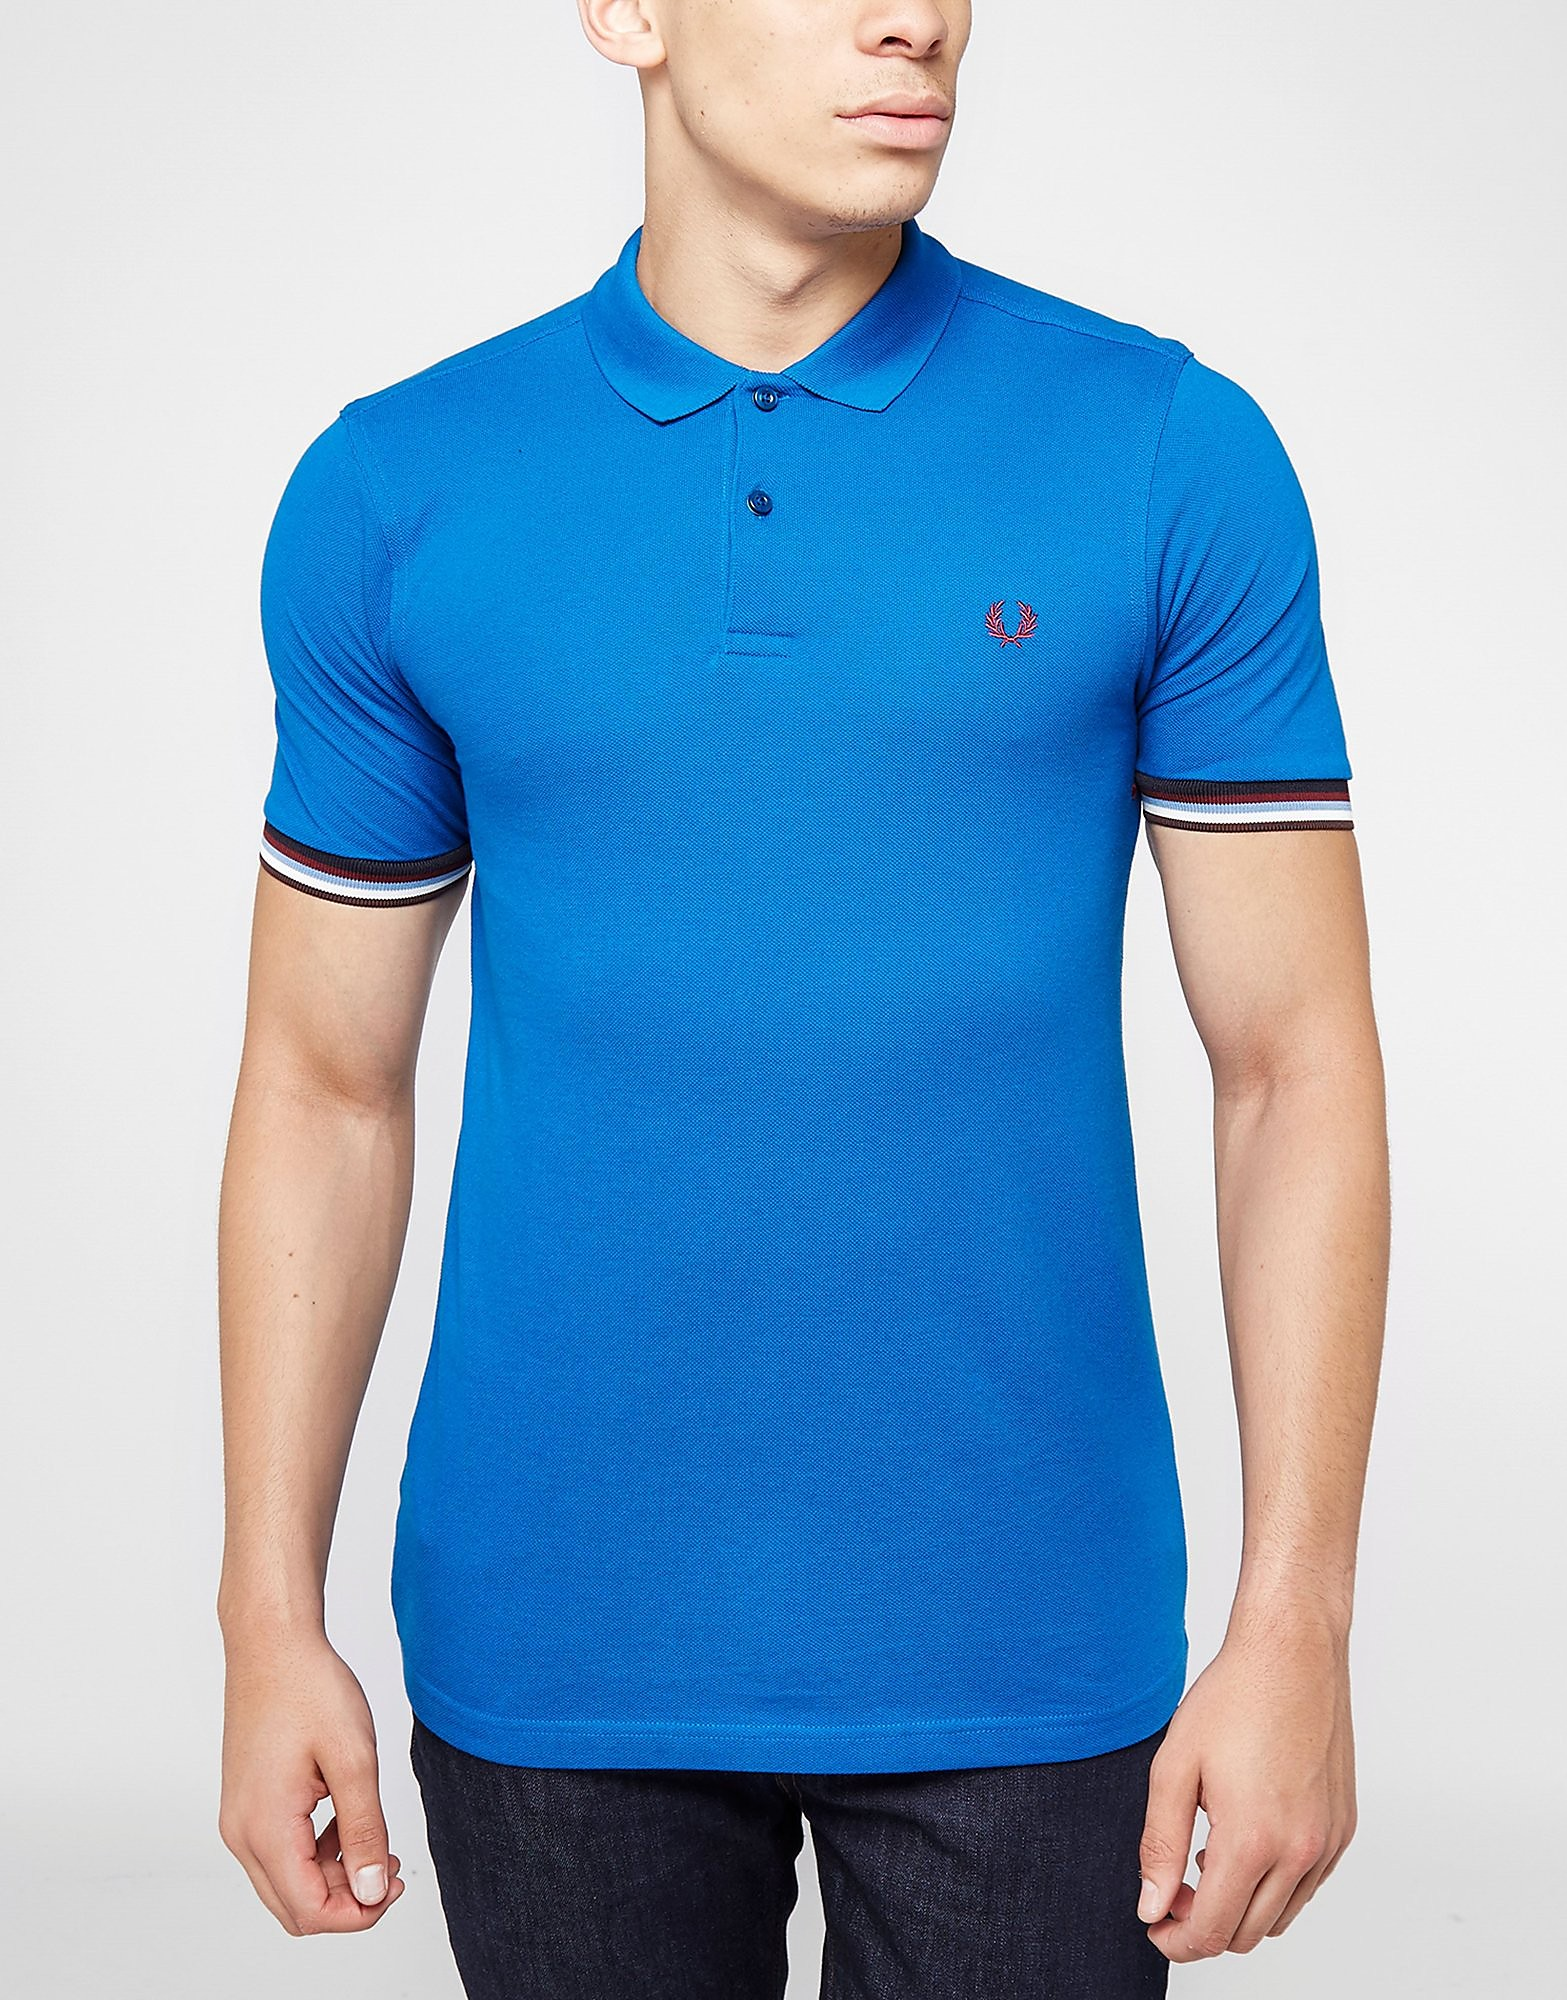 Fred Perry Tipped Cuffs Serv Polo Shirt